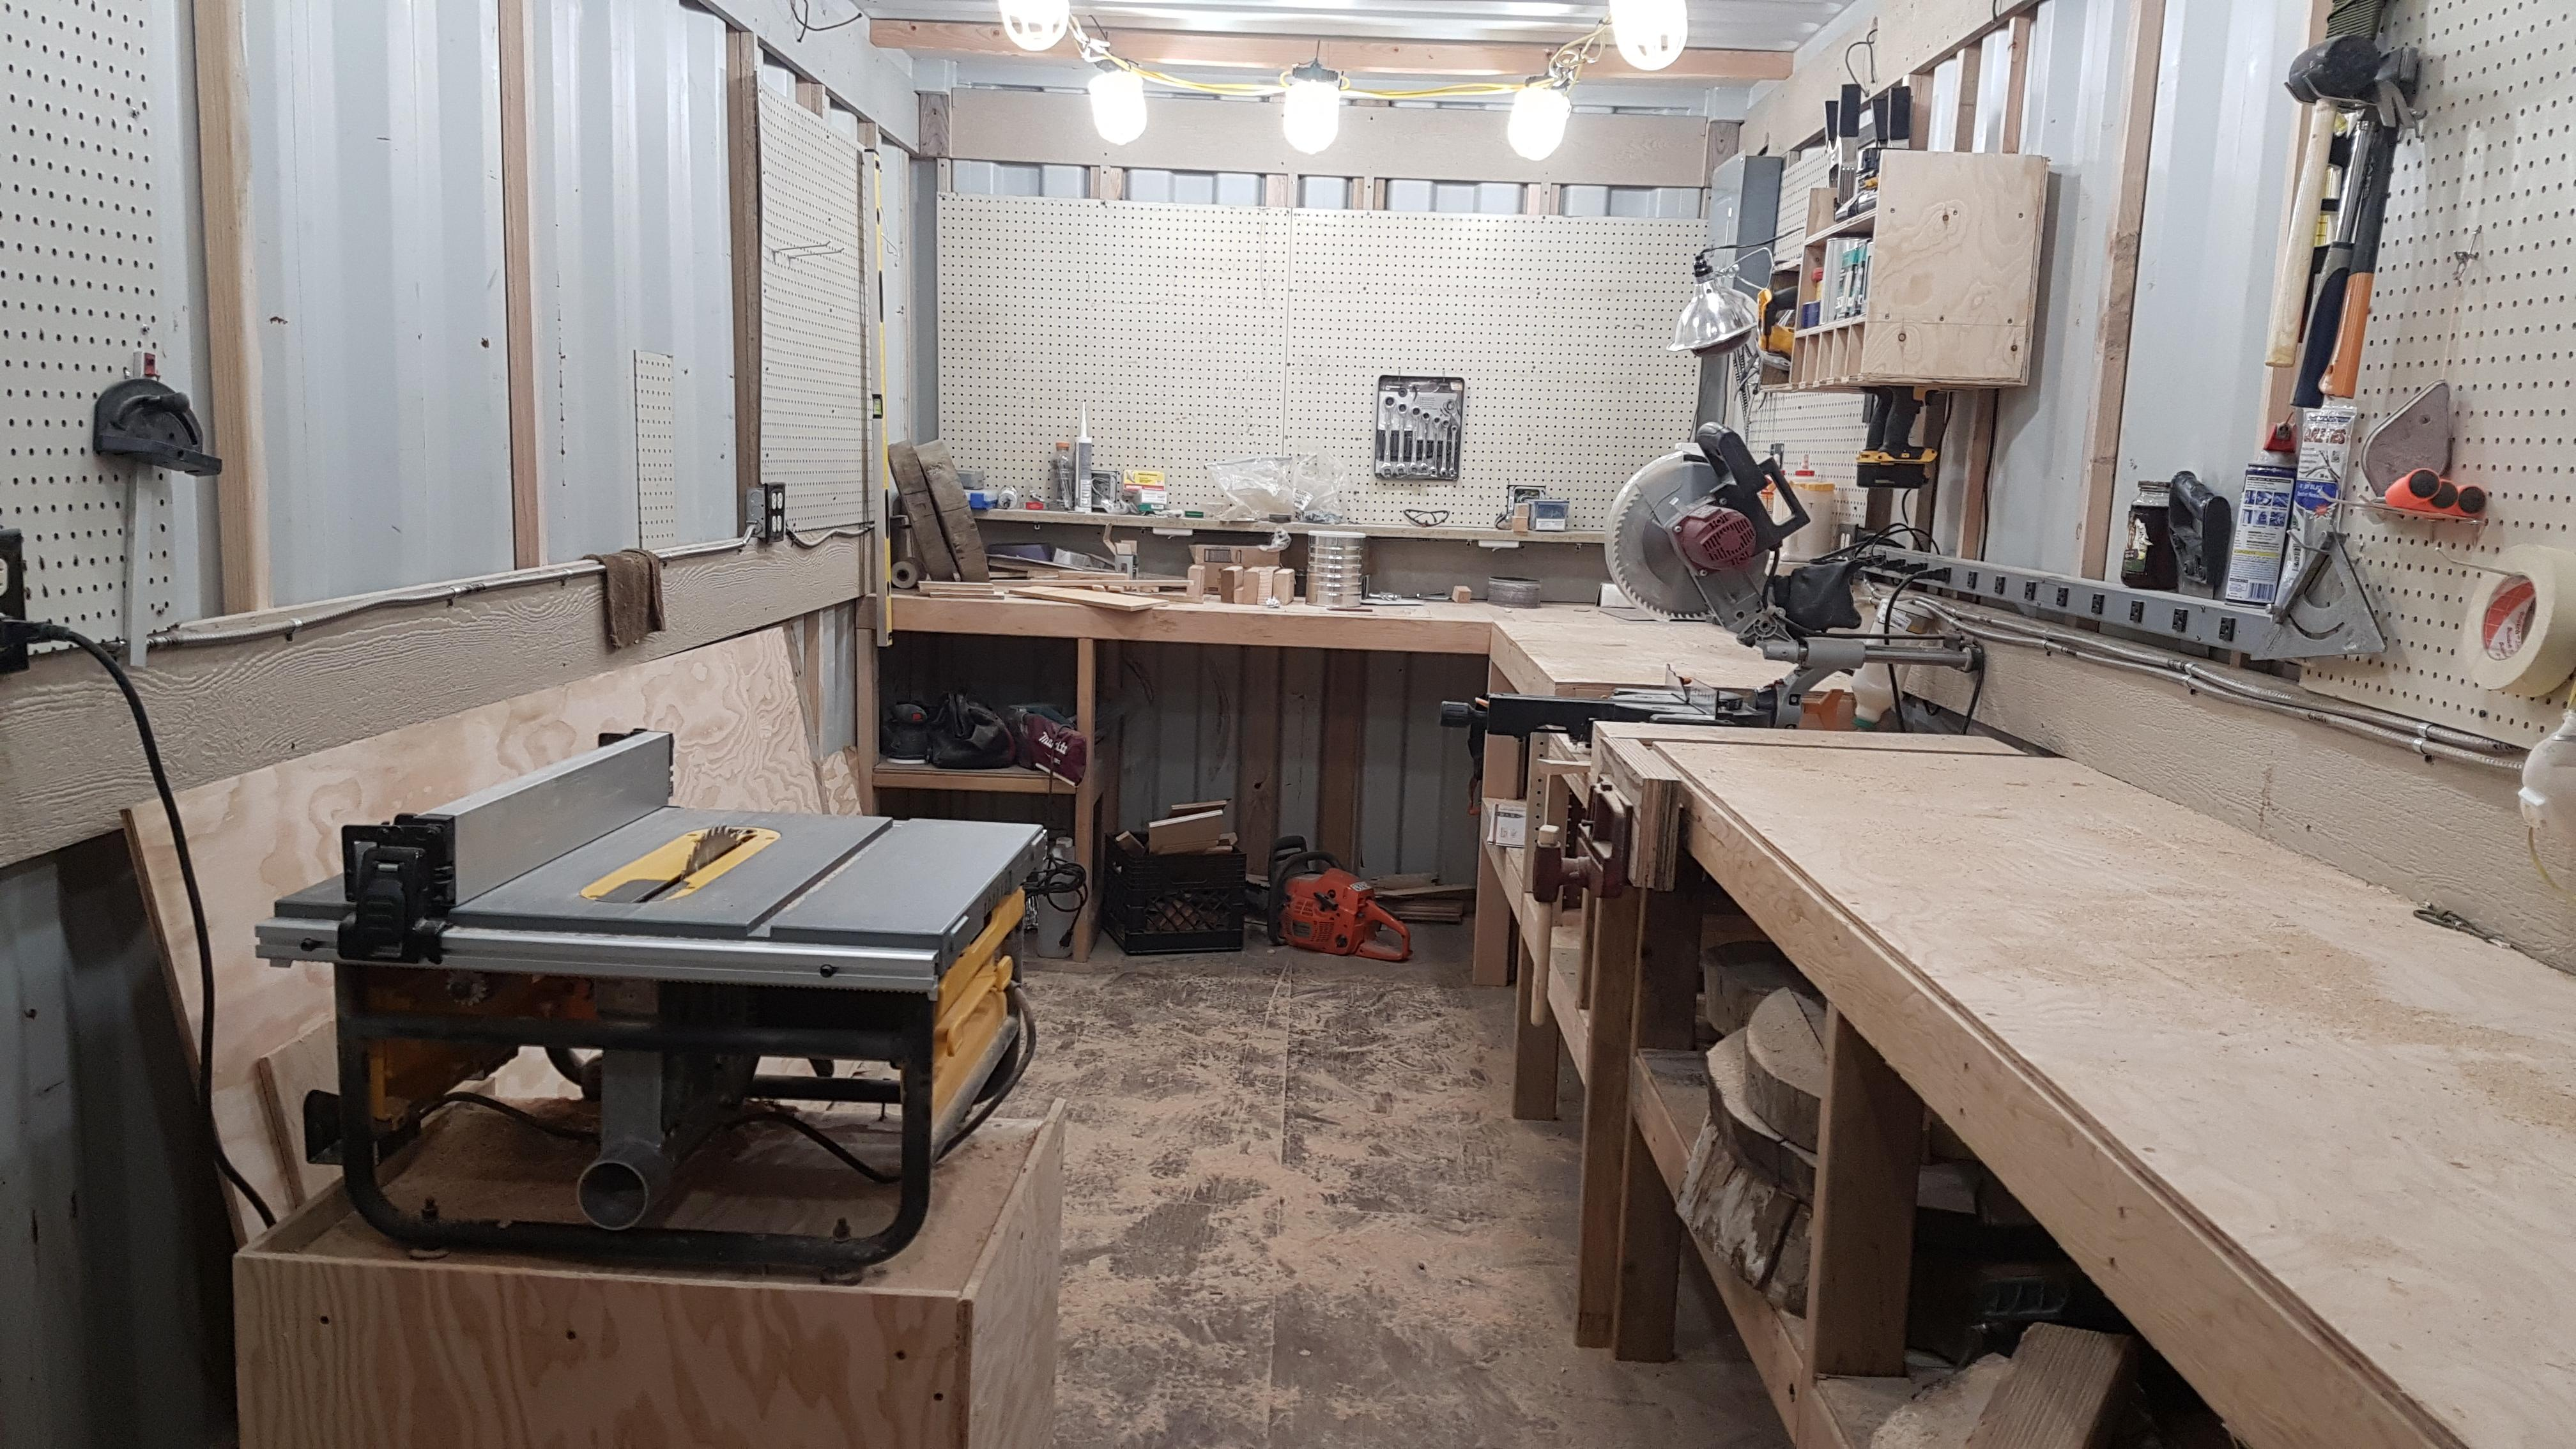 Best Kitchen Gallery: My Dad And I Turned A Shipping Container Into A Wood Shop Woodworking of Shipping Container Workshop on rachelxblog.com